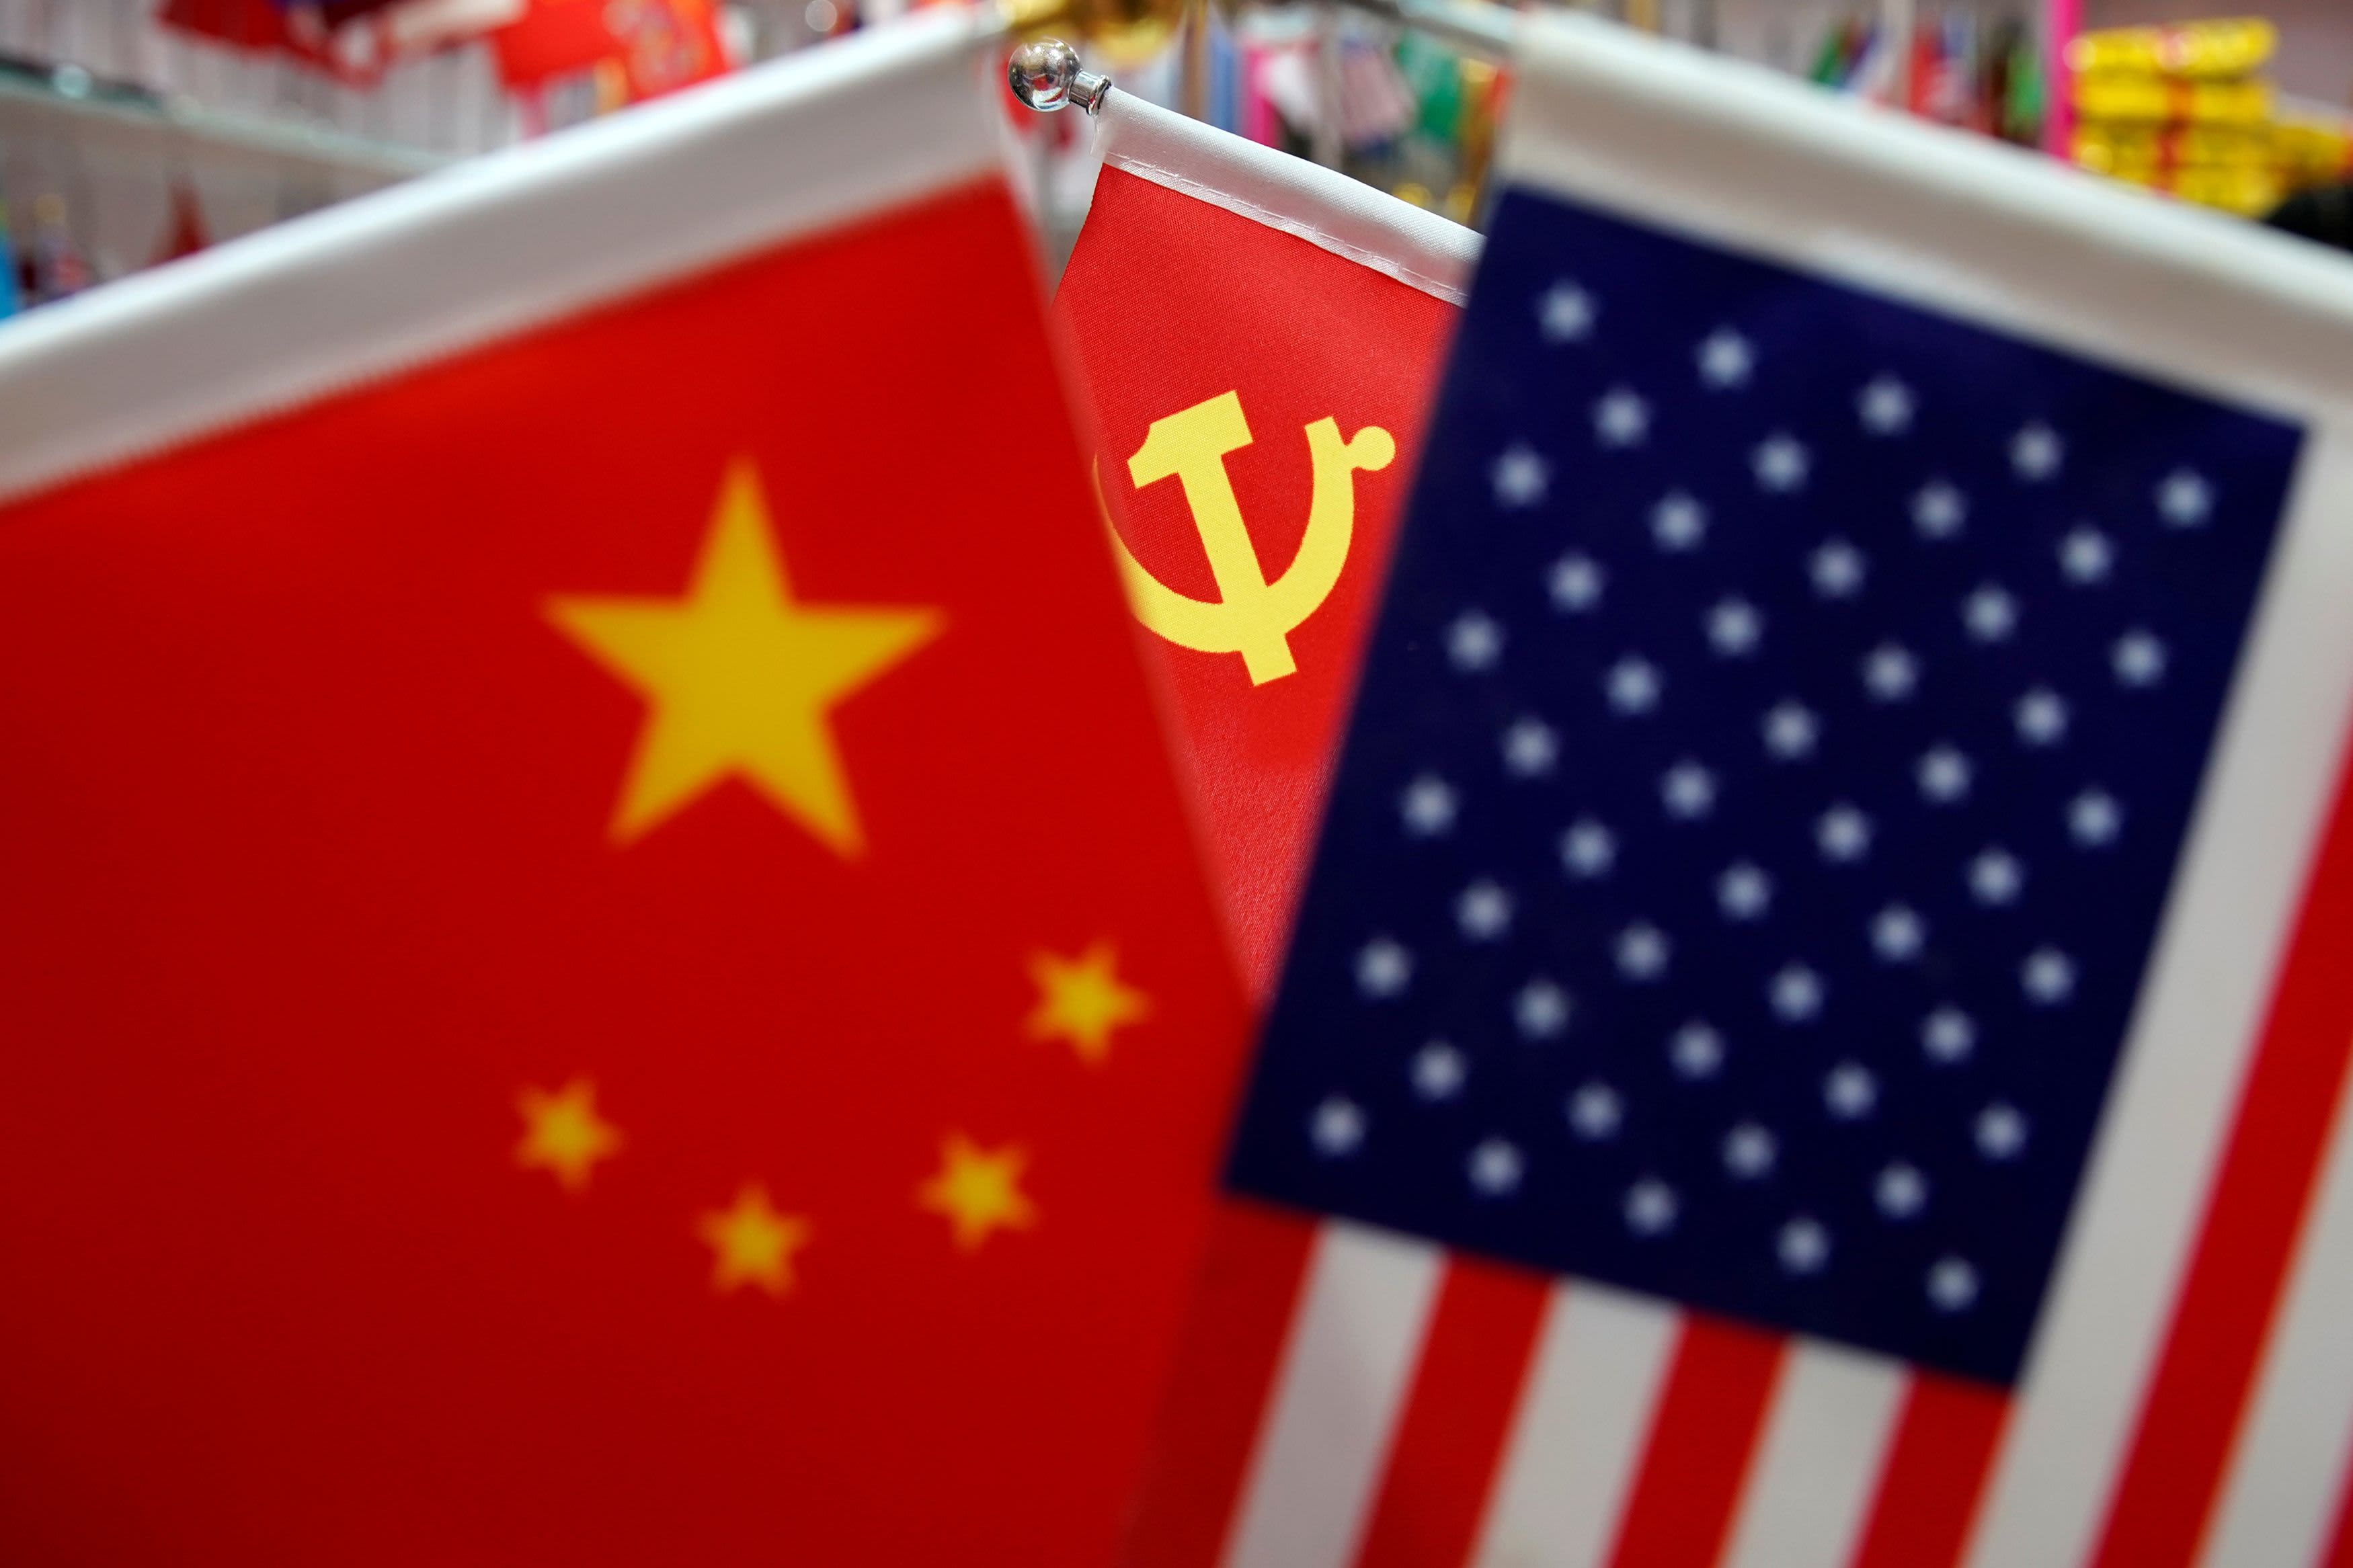 Chinese Foreign Minister Takes Firm Tone, Calls for 'Non-Interference' Between China and the U.S. – NBC New York